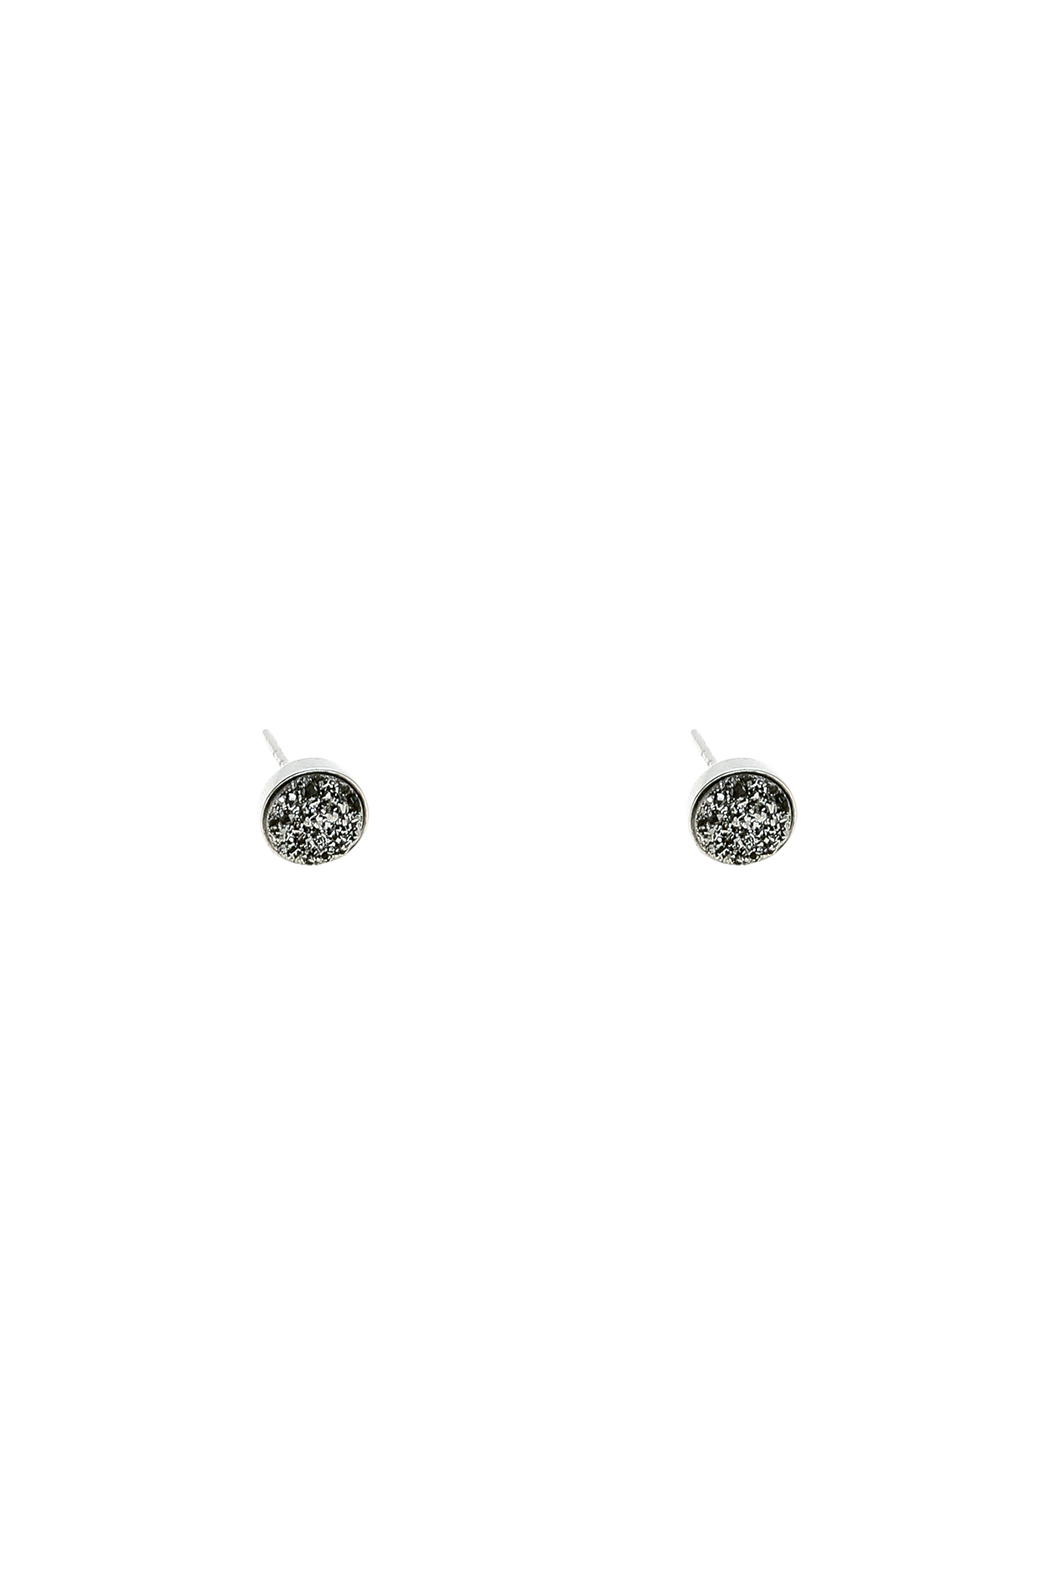 Victoria Greenhood Jewelry Design Small Silver Druzy Studs - Main Image